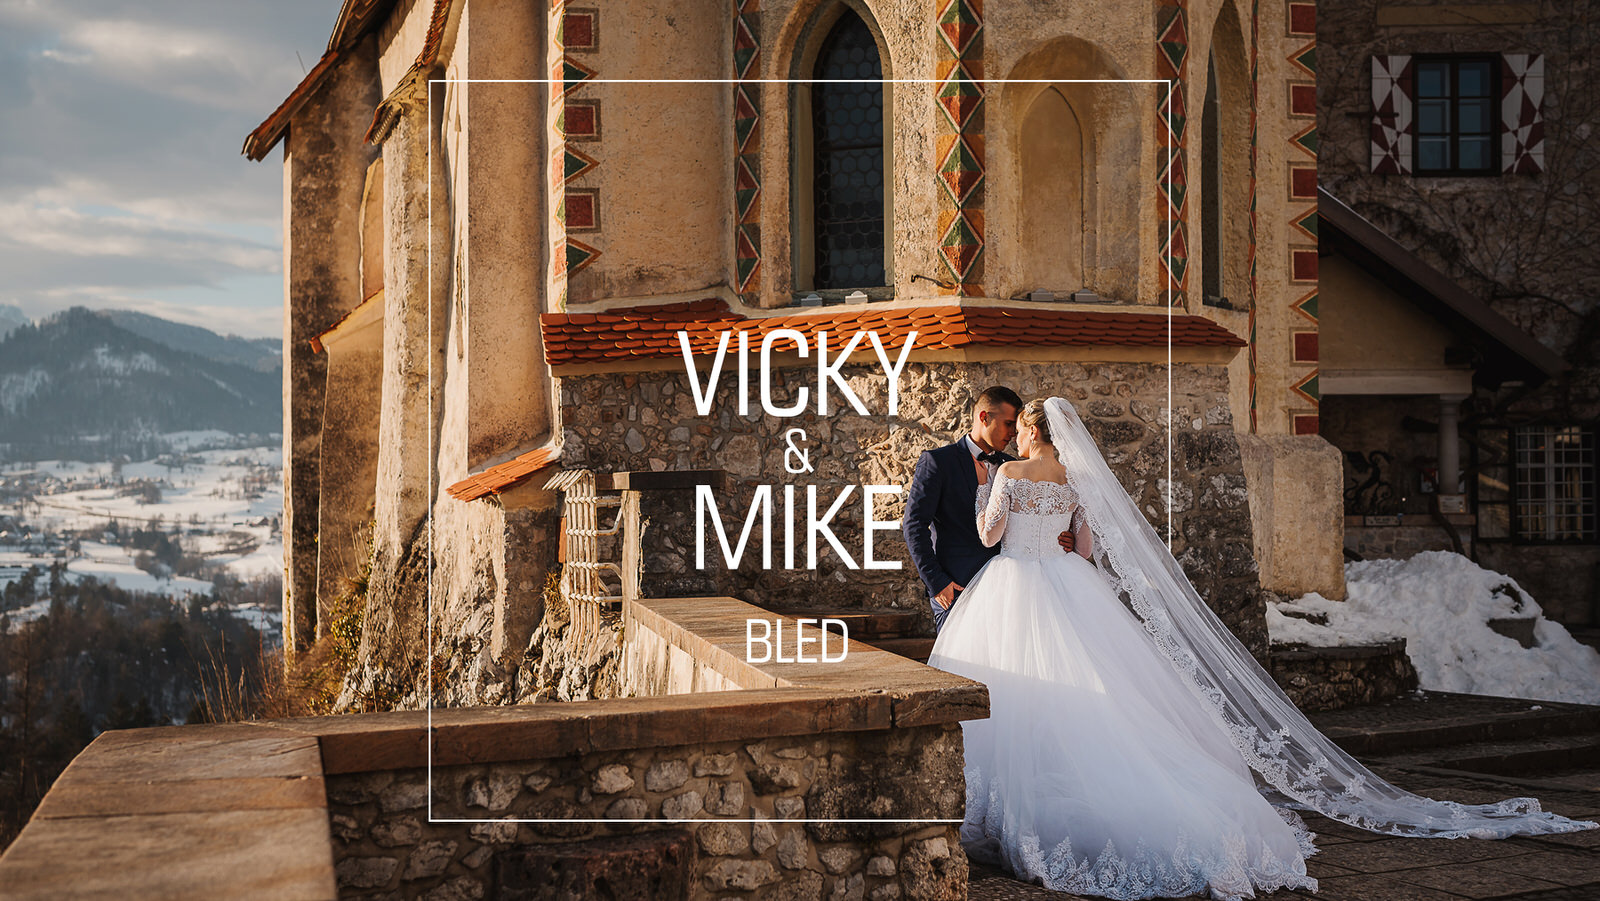 Vicky and Mike.jpg